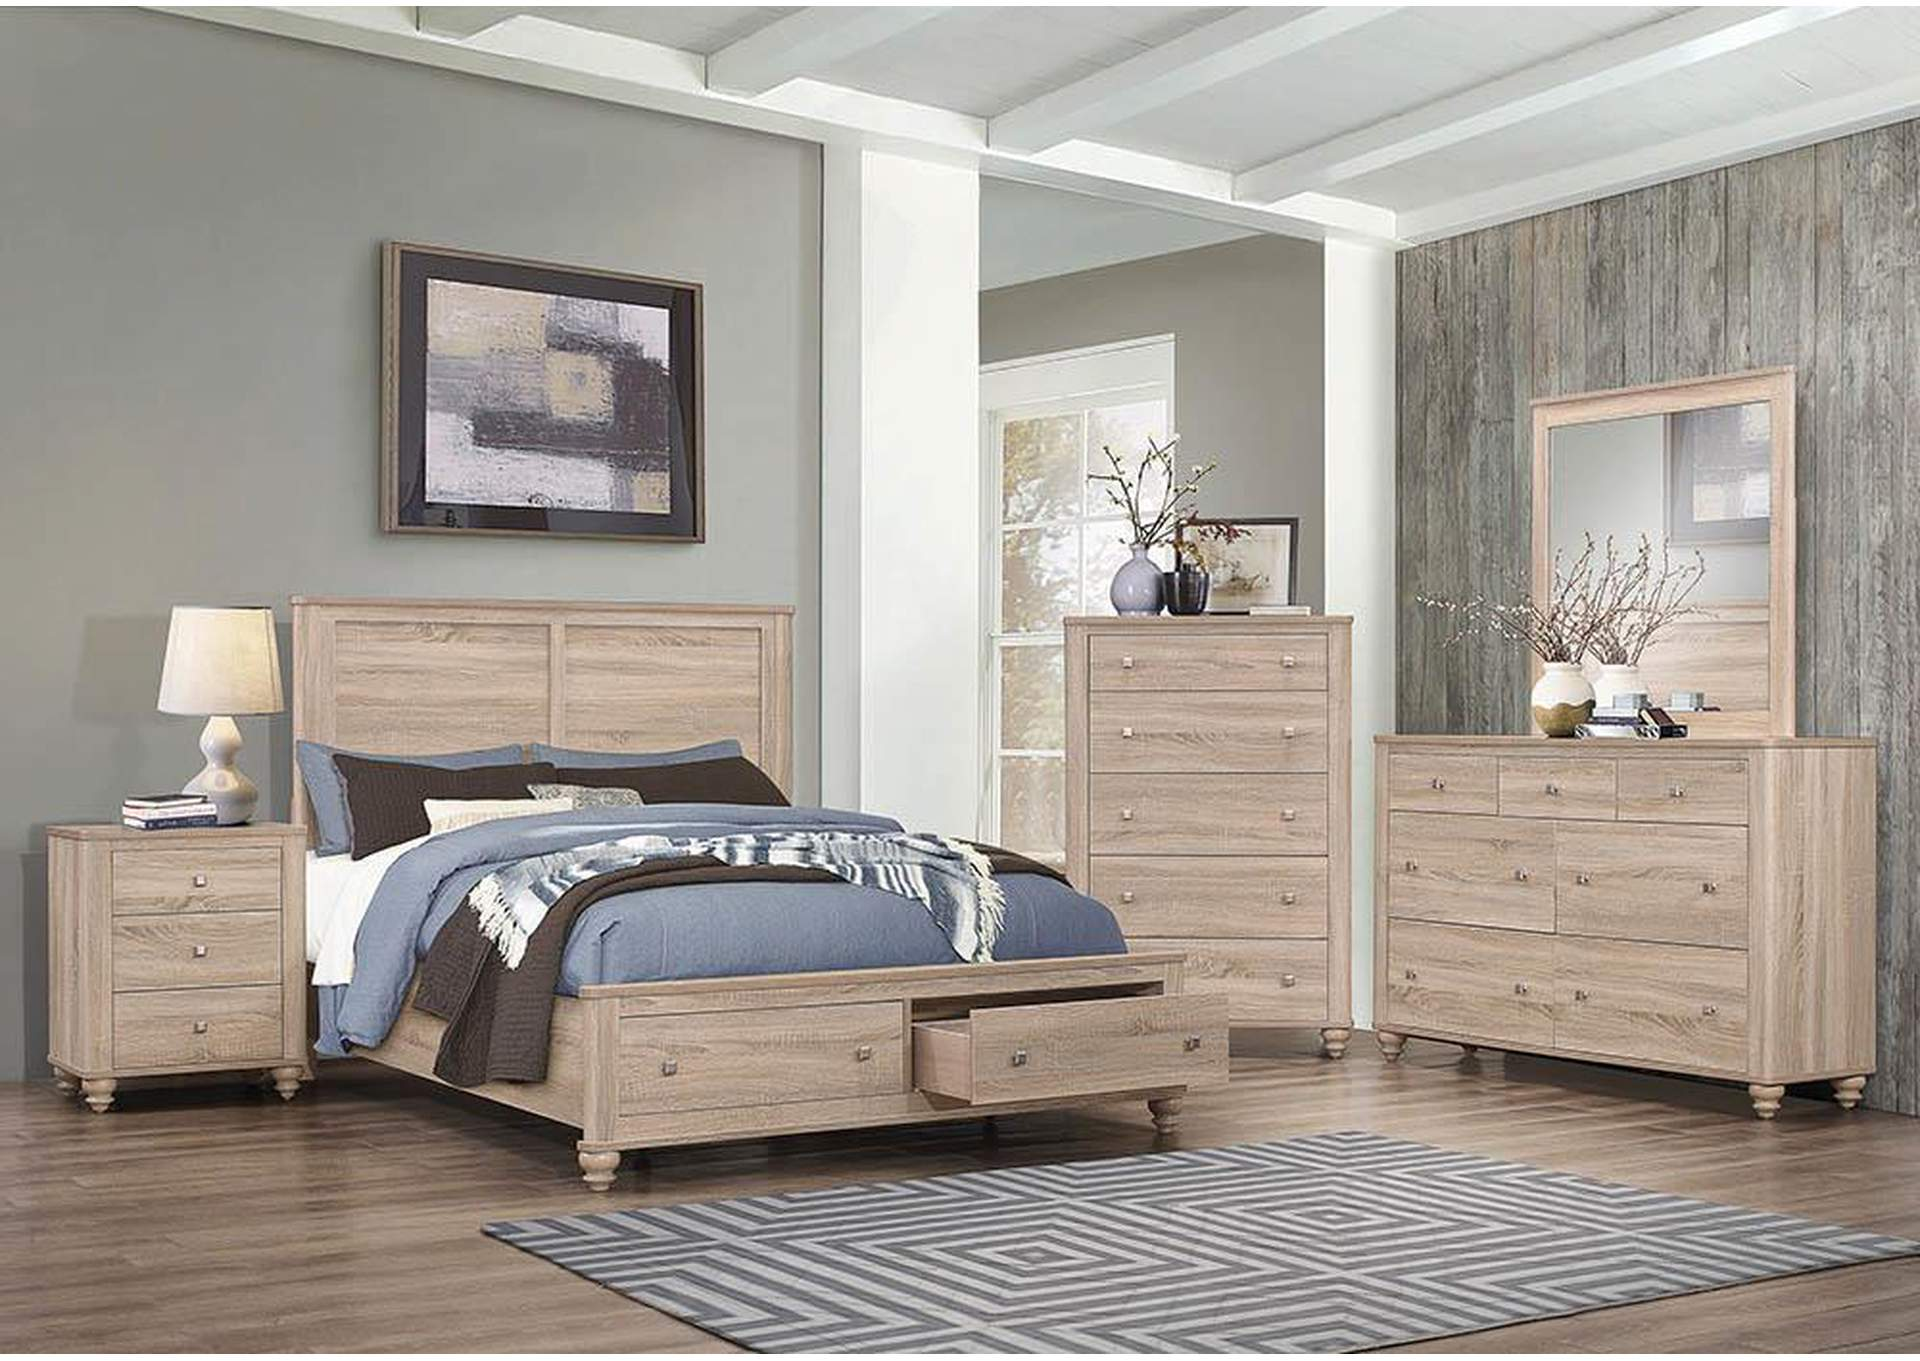 Wenham Natural Oak 4 Piece Full Bedroom Set,Coaster Furniture